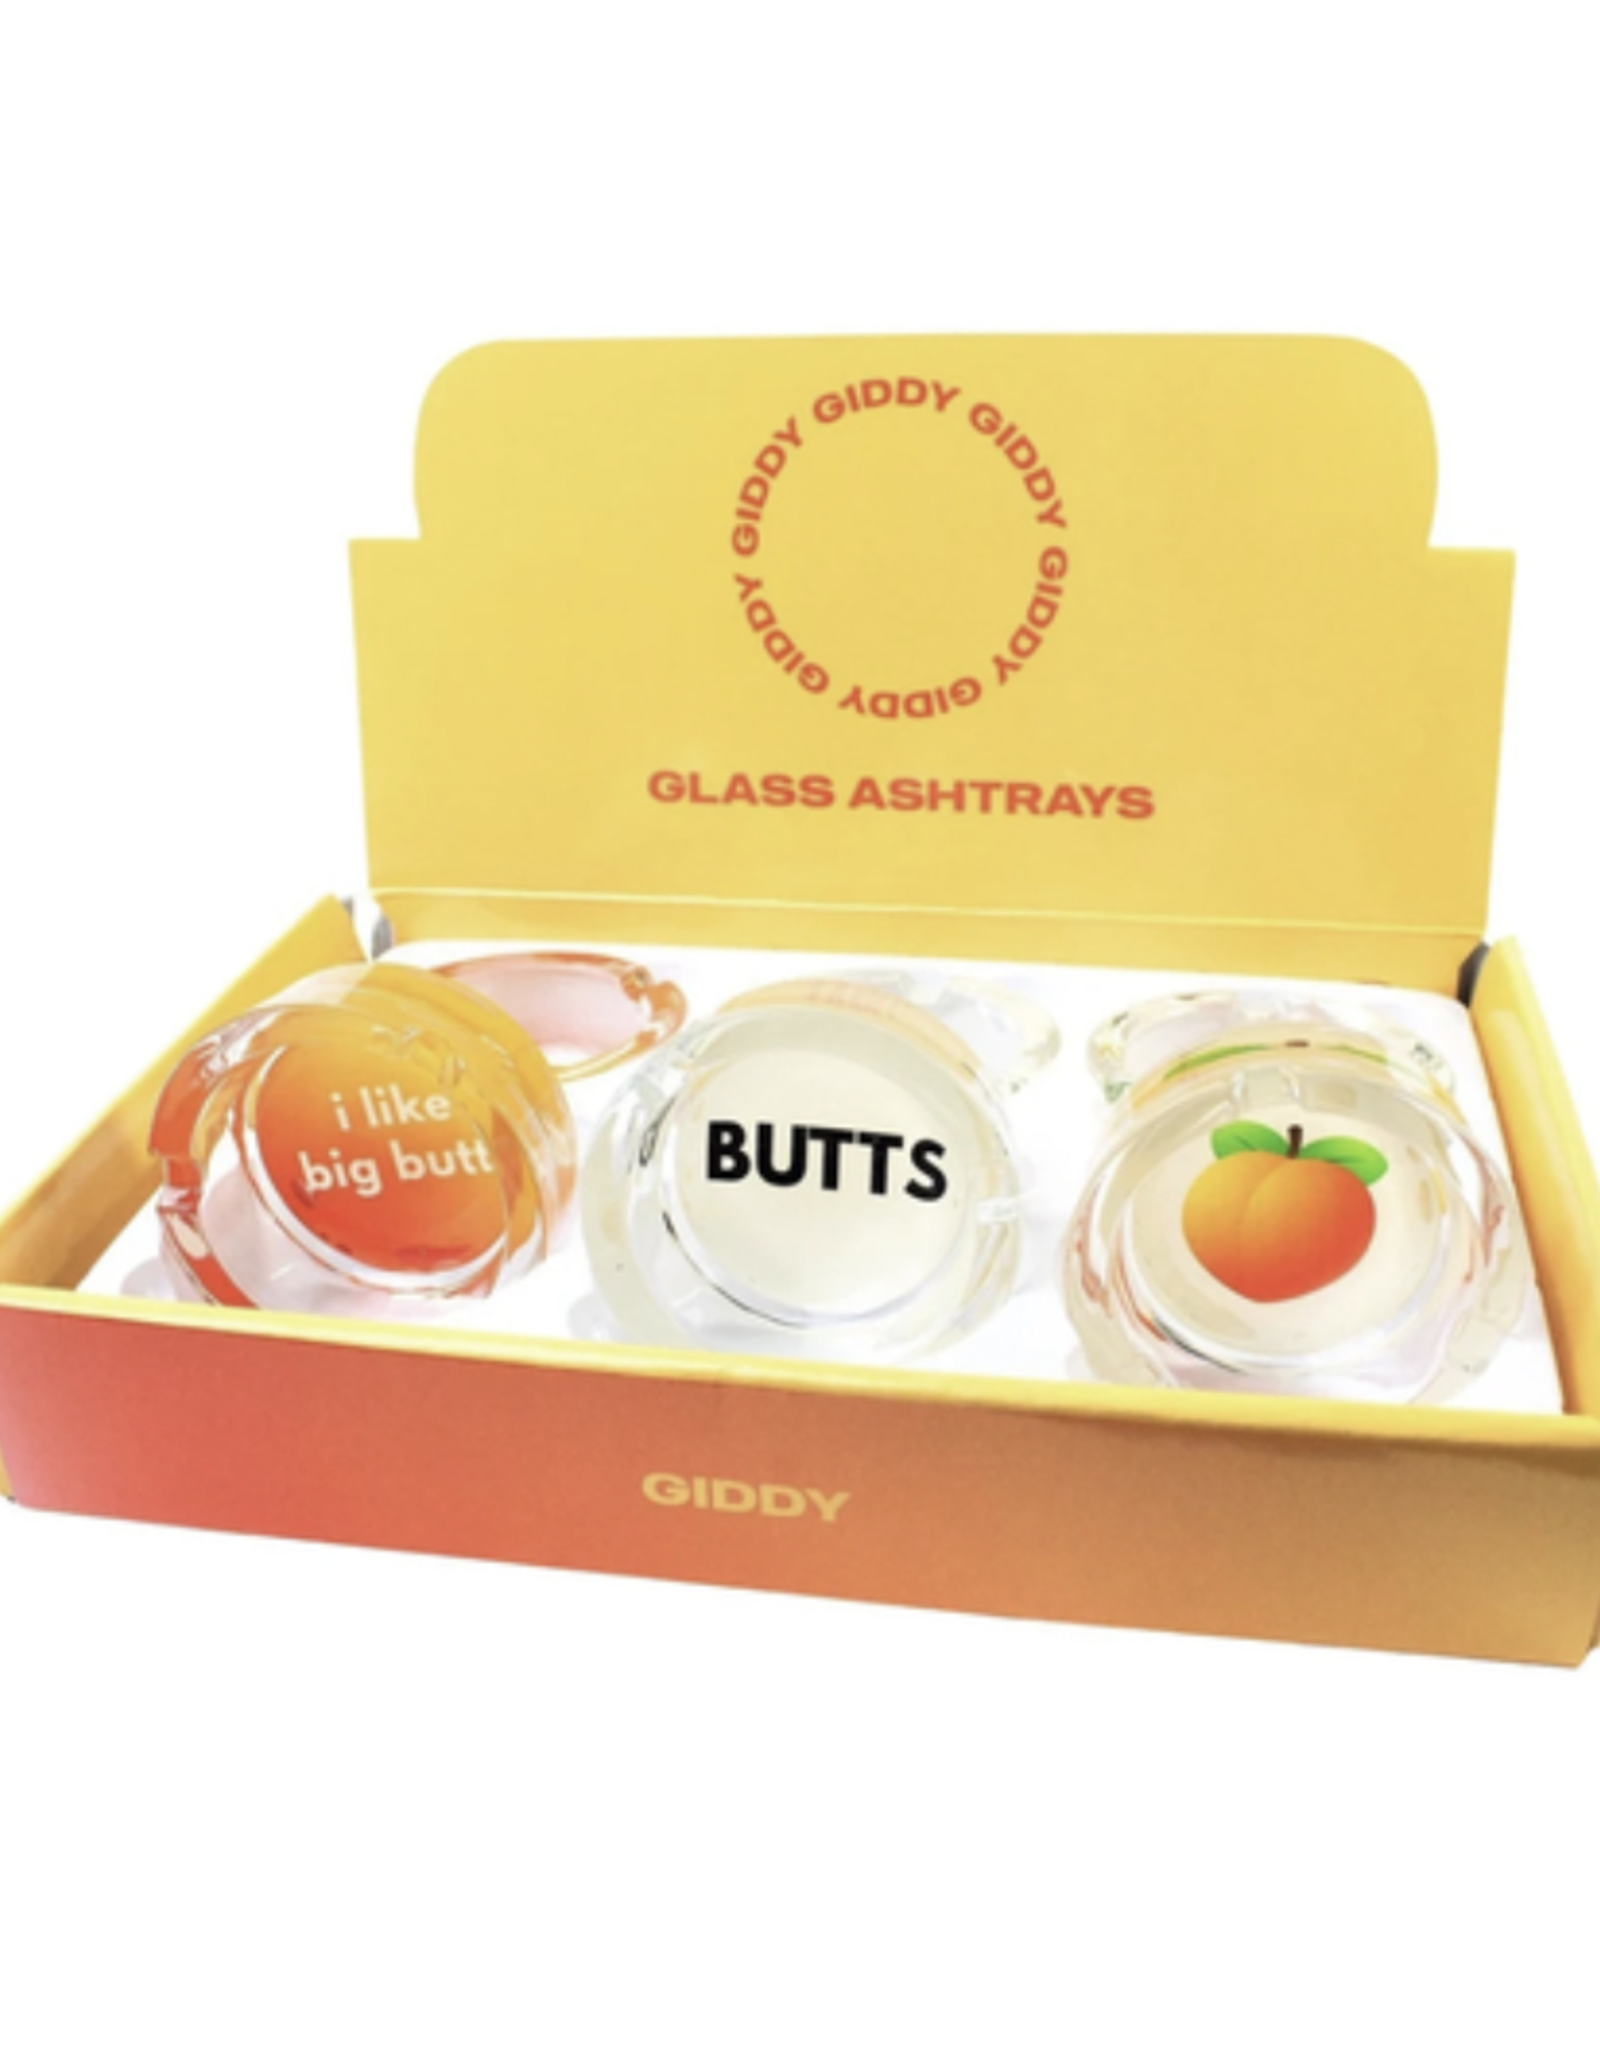 """Butts 3.3"""" x 1.4"""" Glass Ashtray by Giddy"""